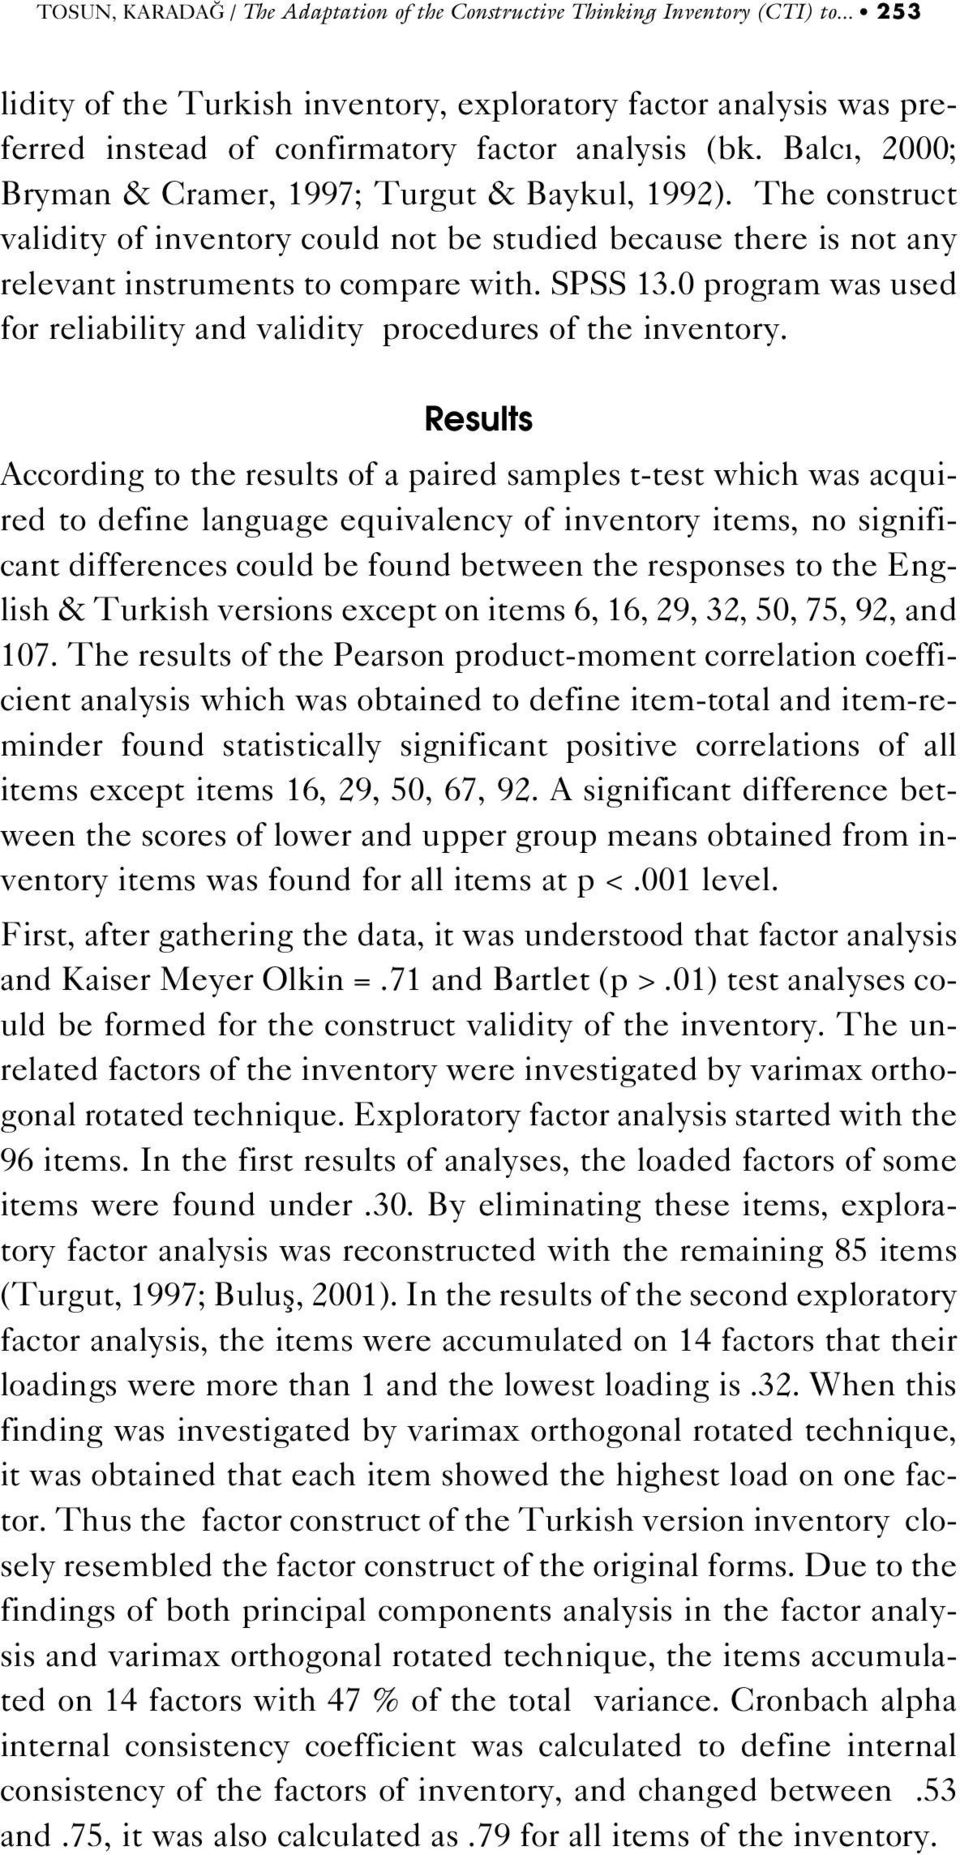 The construct validity of inventory could not be studied because there is not any relevant instruments to compare with. SPSS 13.